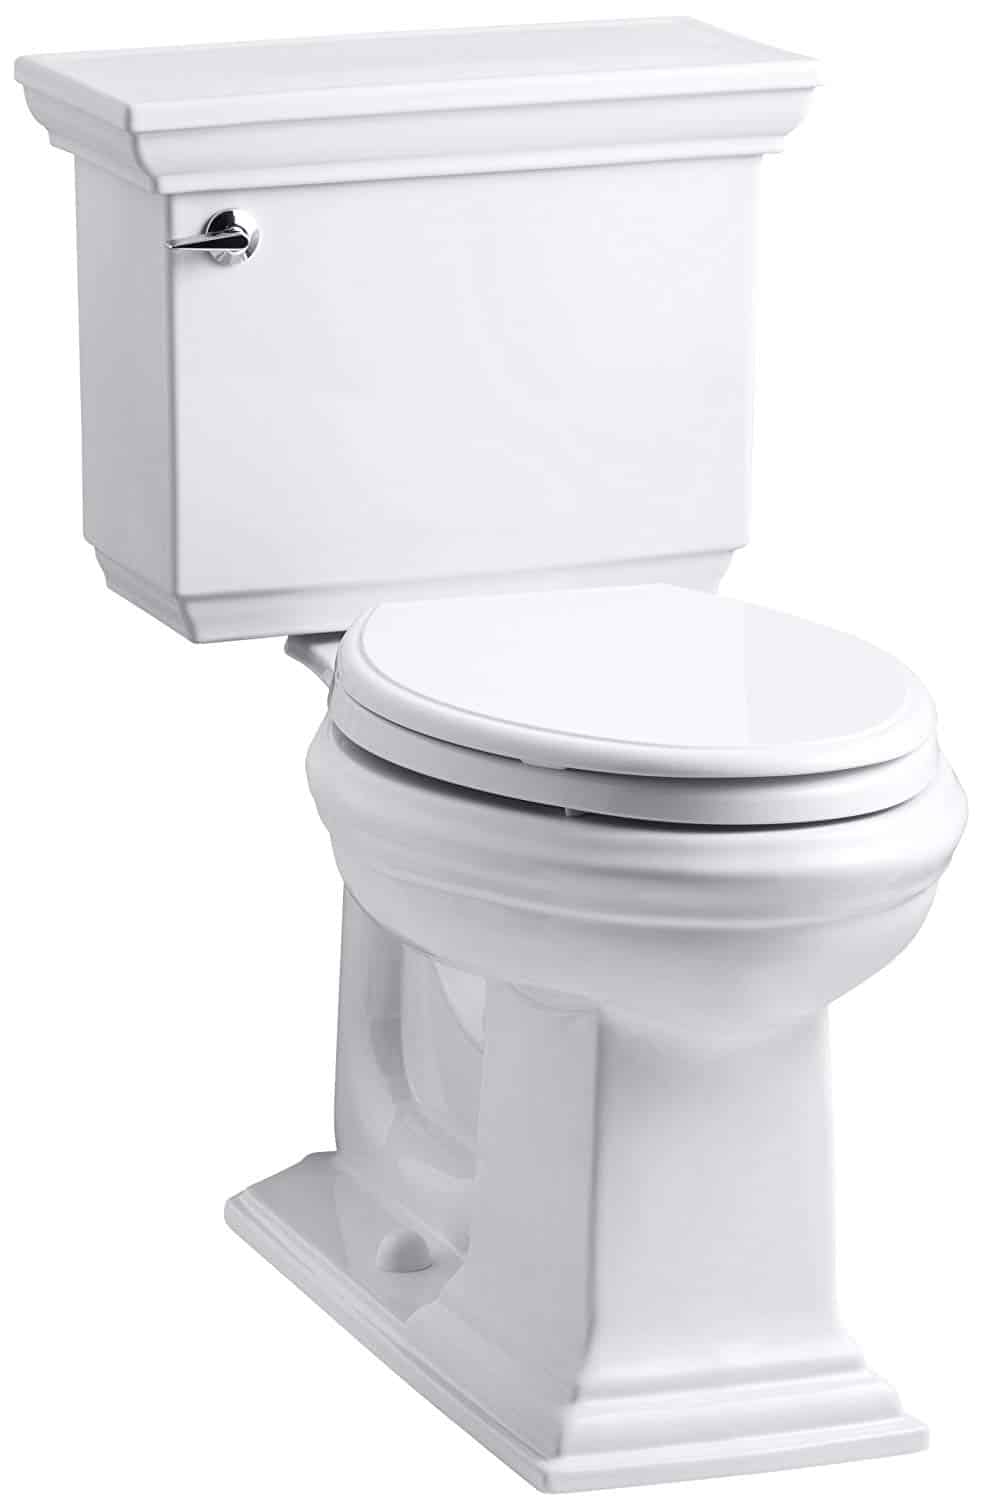 Kohler Memoirs Stately Comfort Height Two-Piece Elongated 1.28 GPF Toilet with AquaPiston Flush Technology and Left-Hand Trip Lever